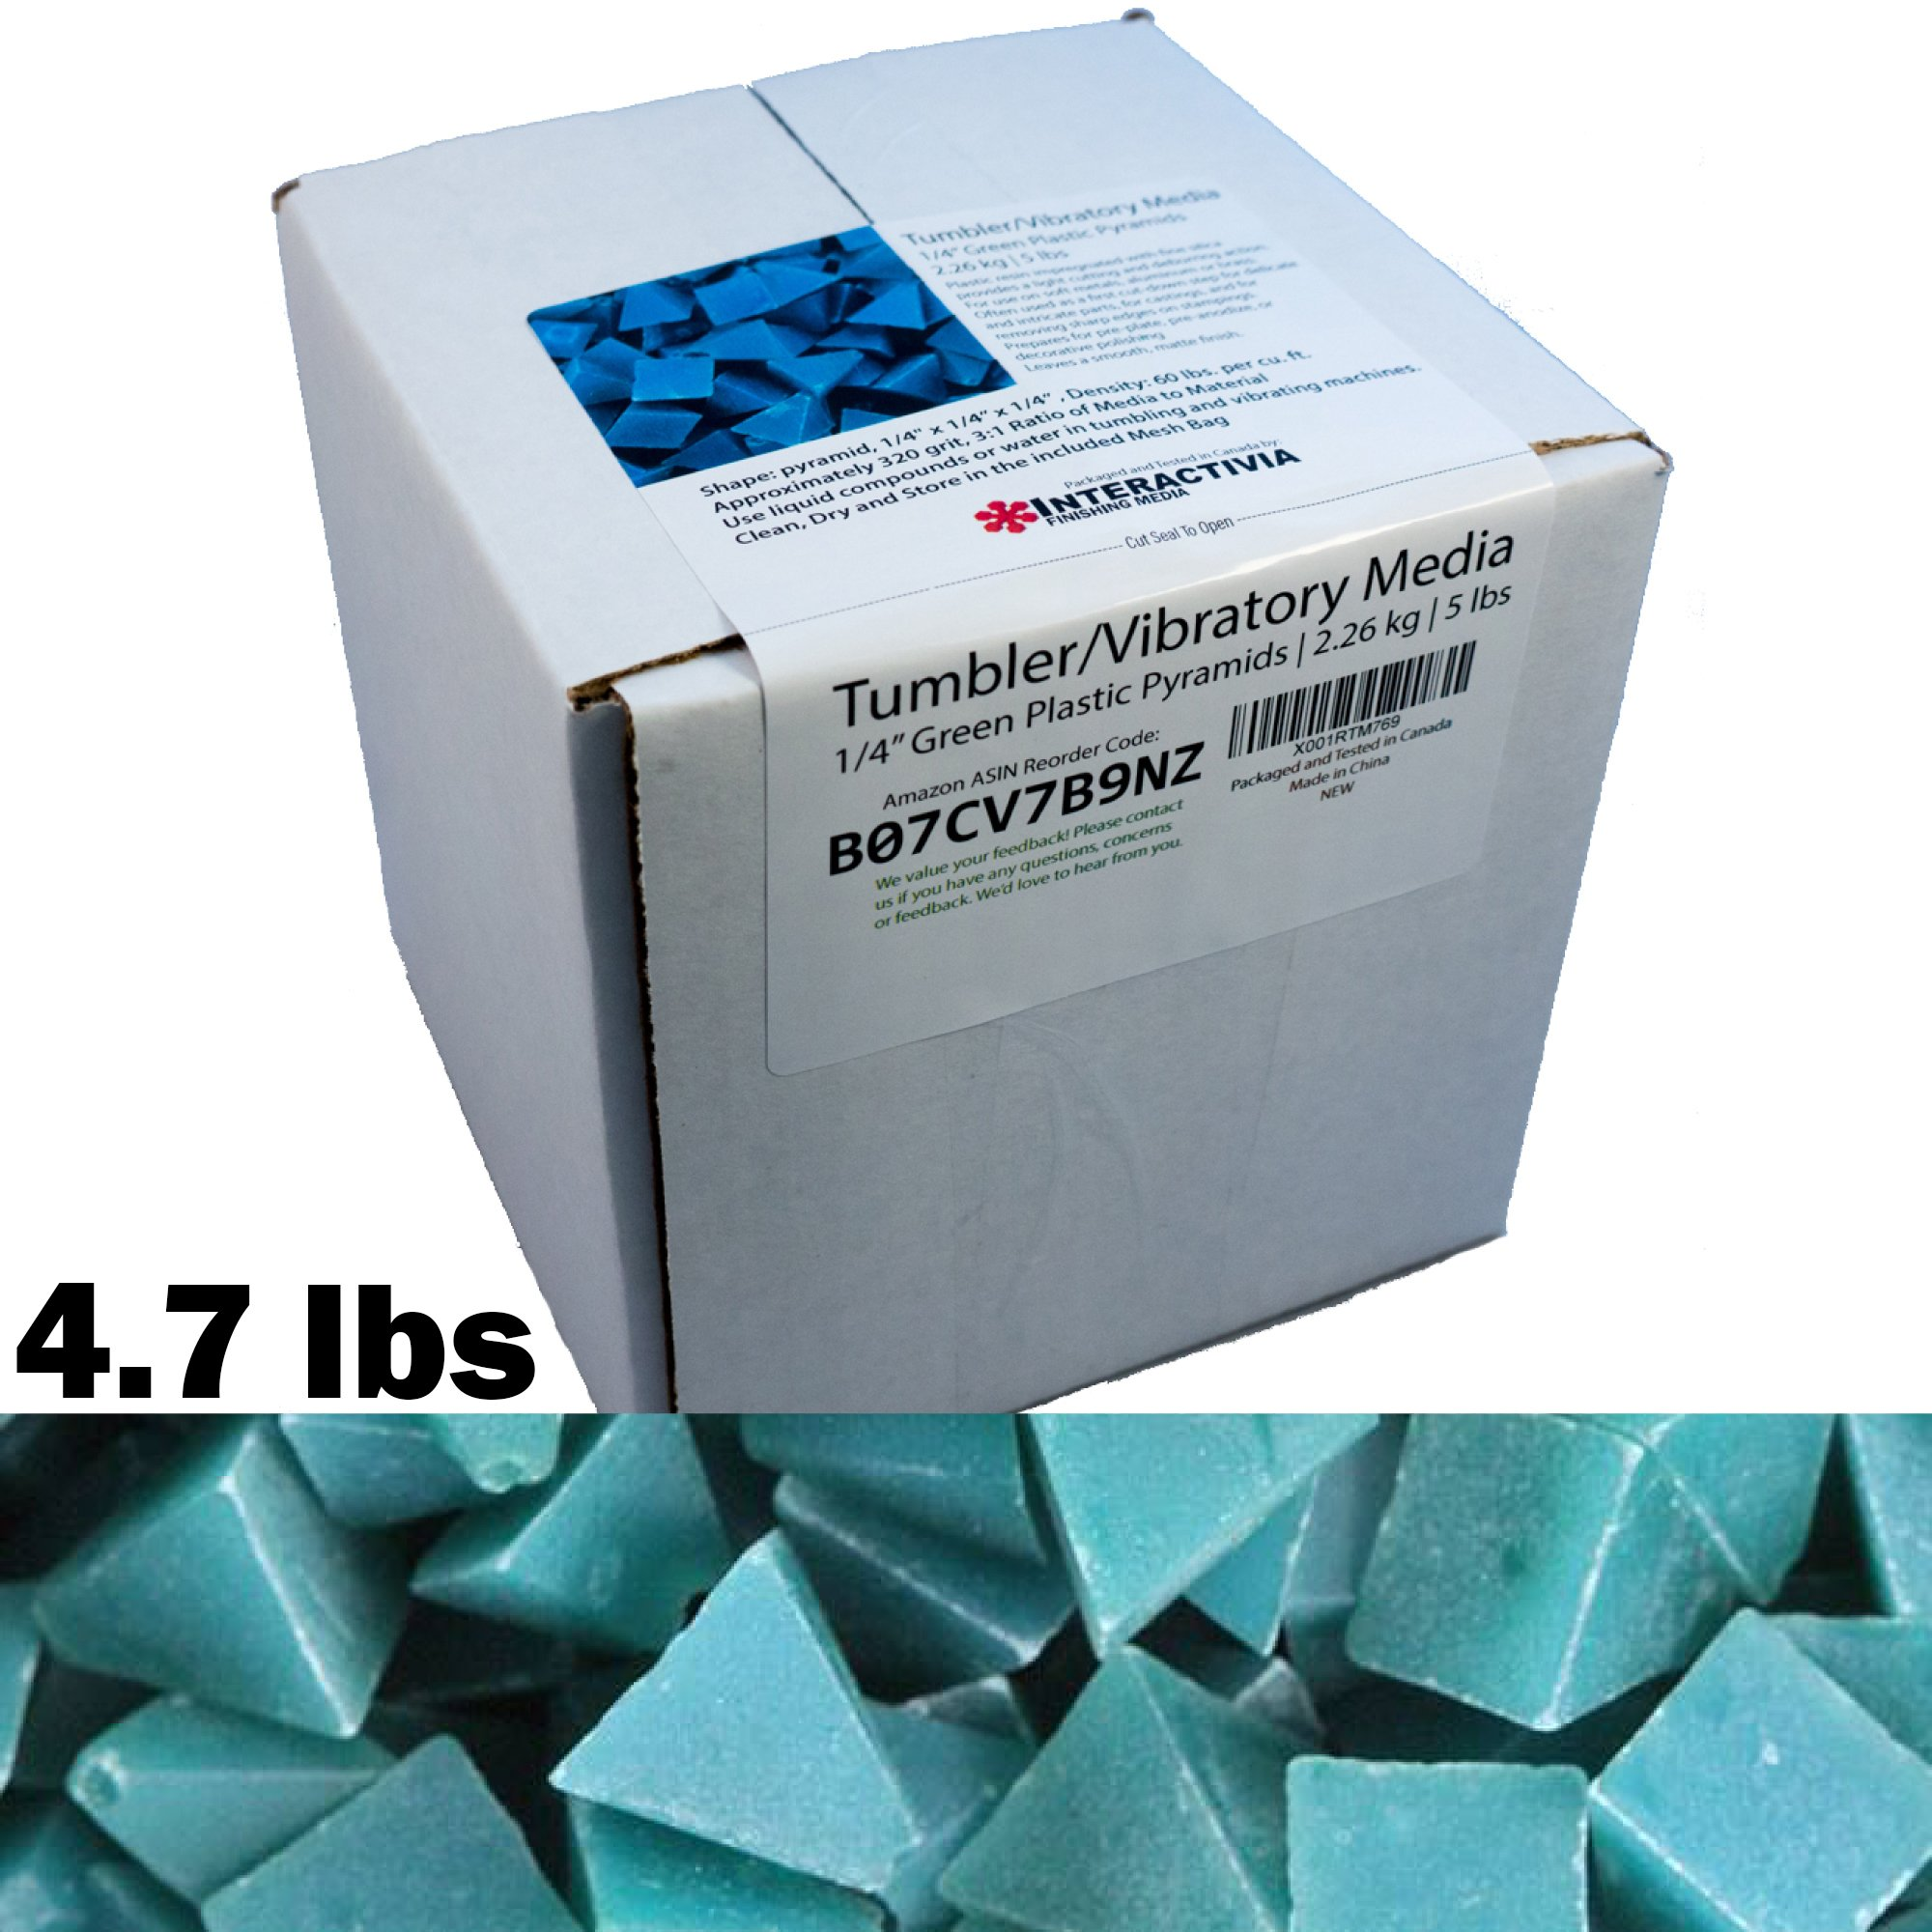 1/4 inch Green Plastic Resin Pyramid (Approx 320 grit) Tumbling Or Vibratory Media 4.7 lbs/2.1 kg | Includes a (Clean, Dry and Store) Mesh Bag | for use in Vibrating Tumbler Or Rotating Tumblers